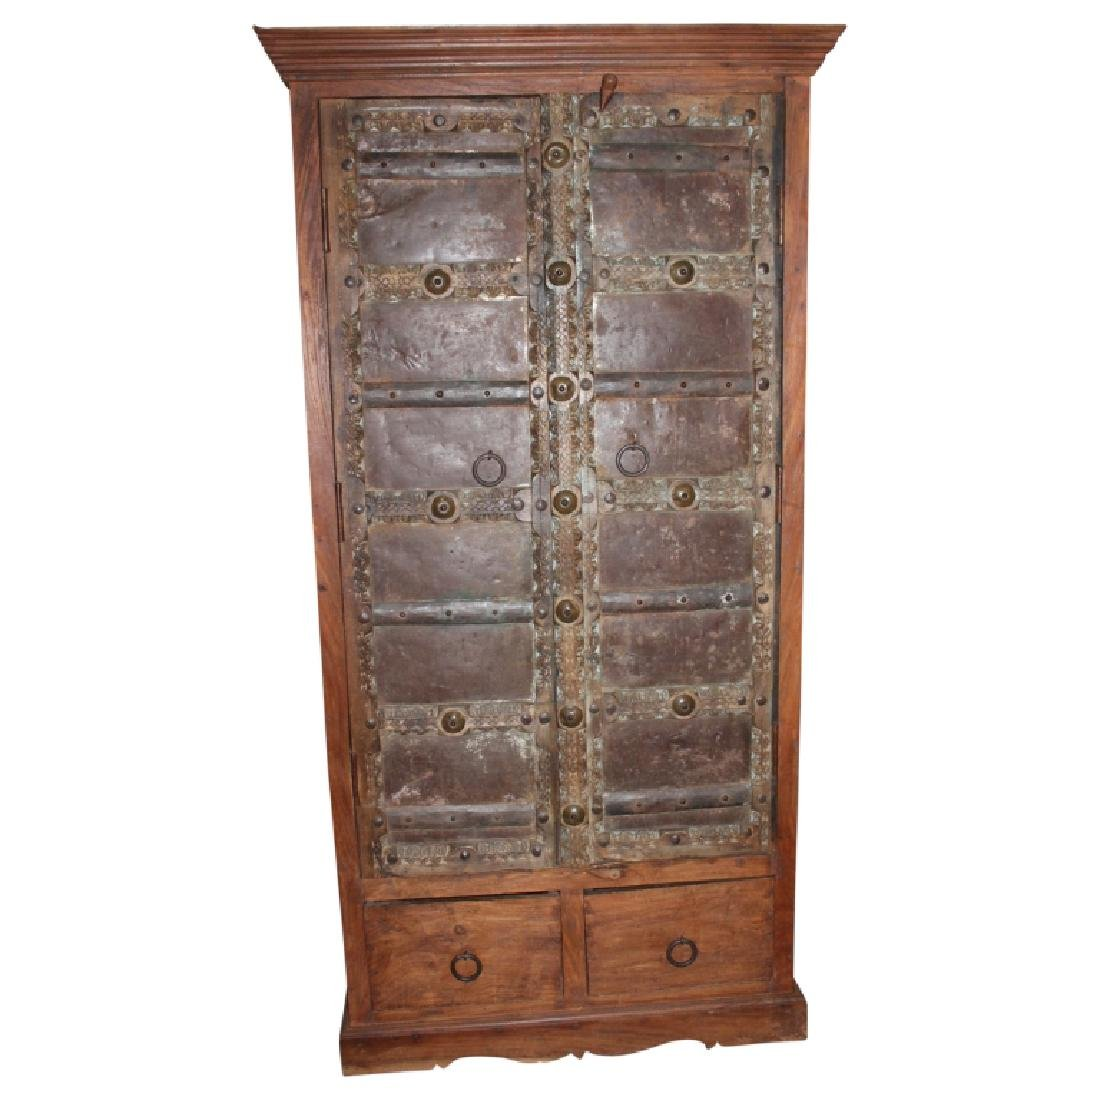 Spanish Revival Cabinet